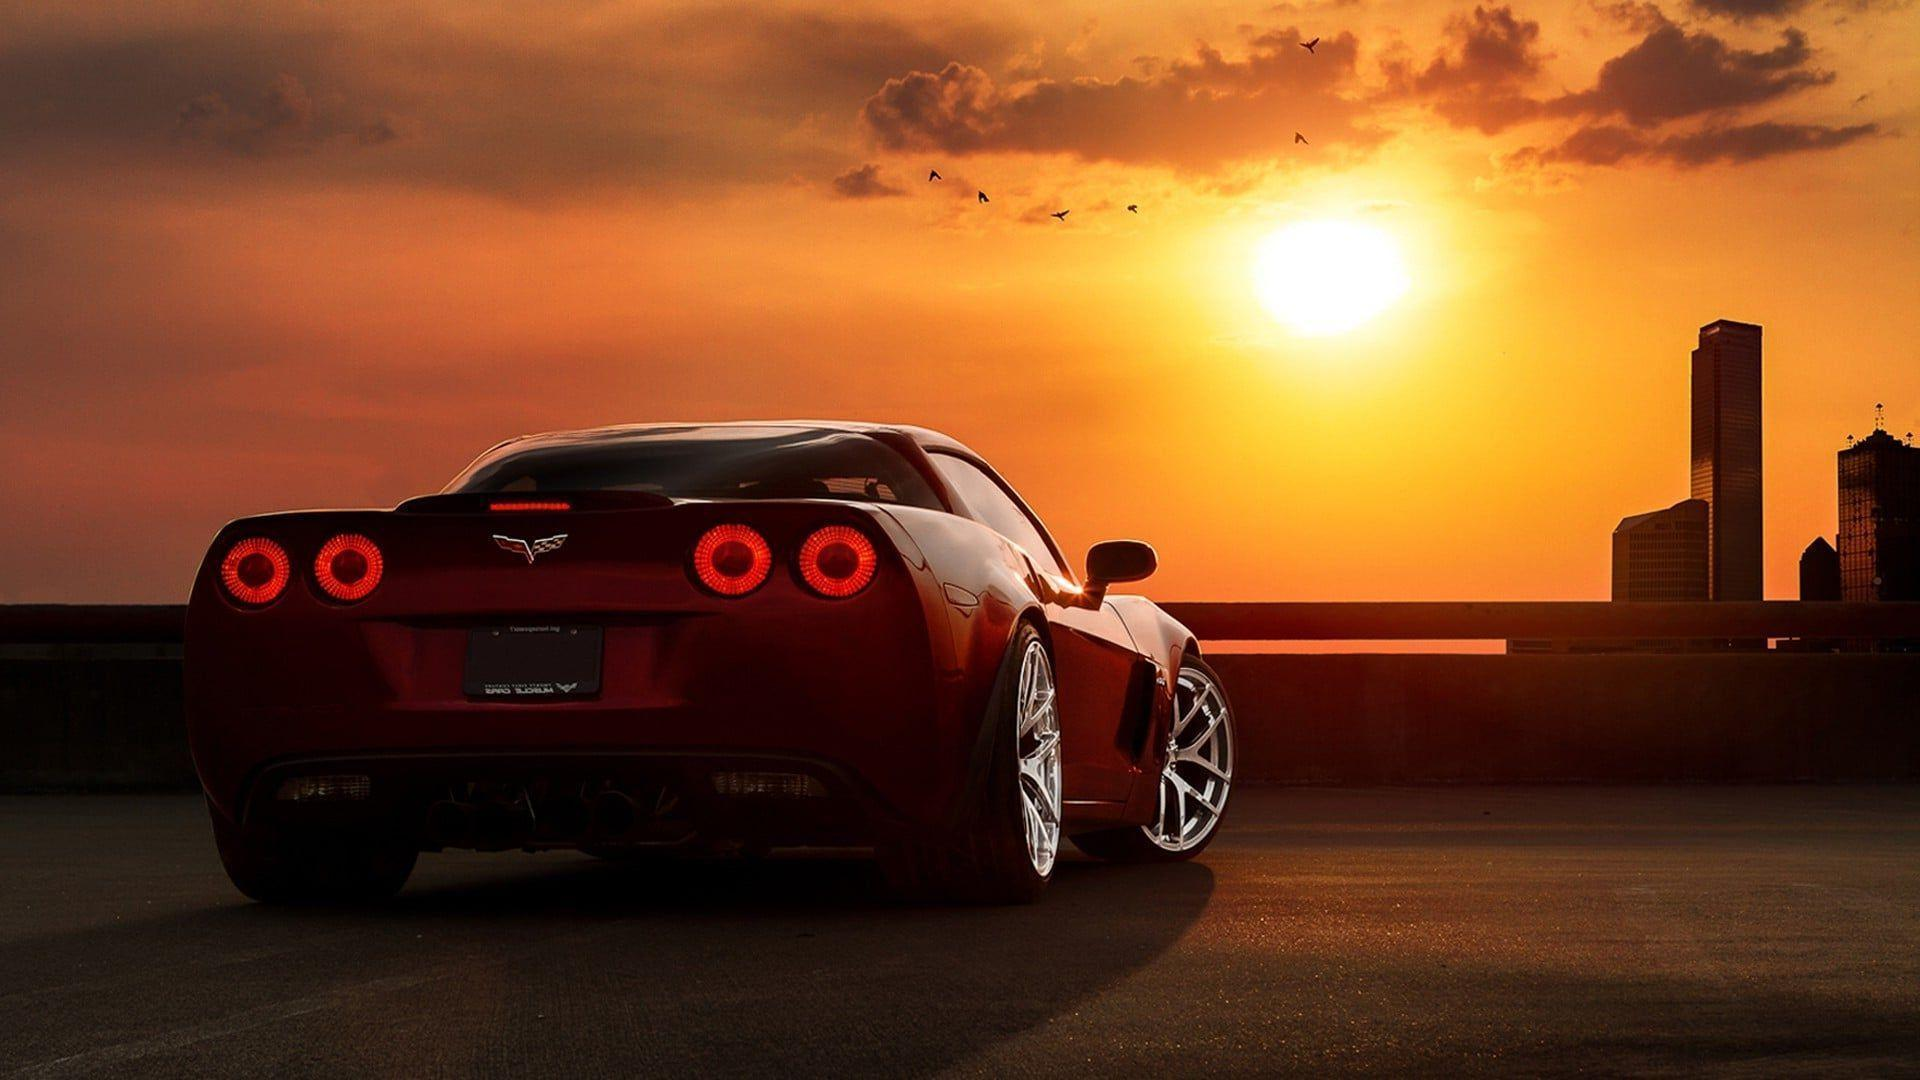 Superb Wallpapers With Quotes For Facebook Corvette 2016 Wallpapers Hd Wallpaper Cave